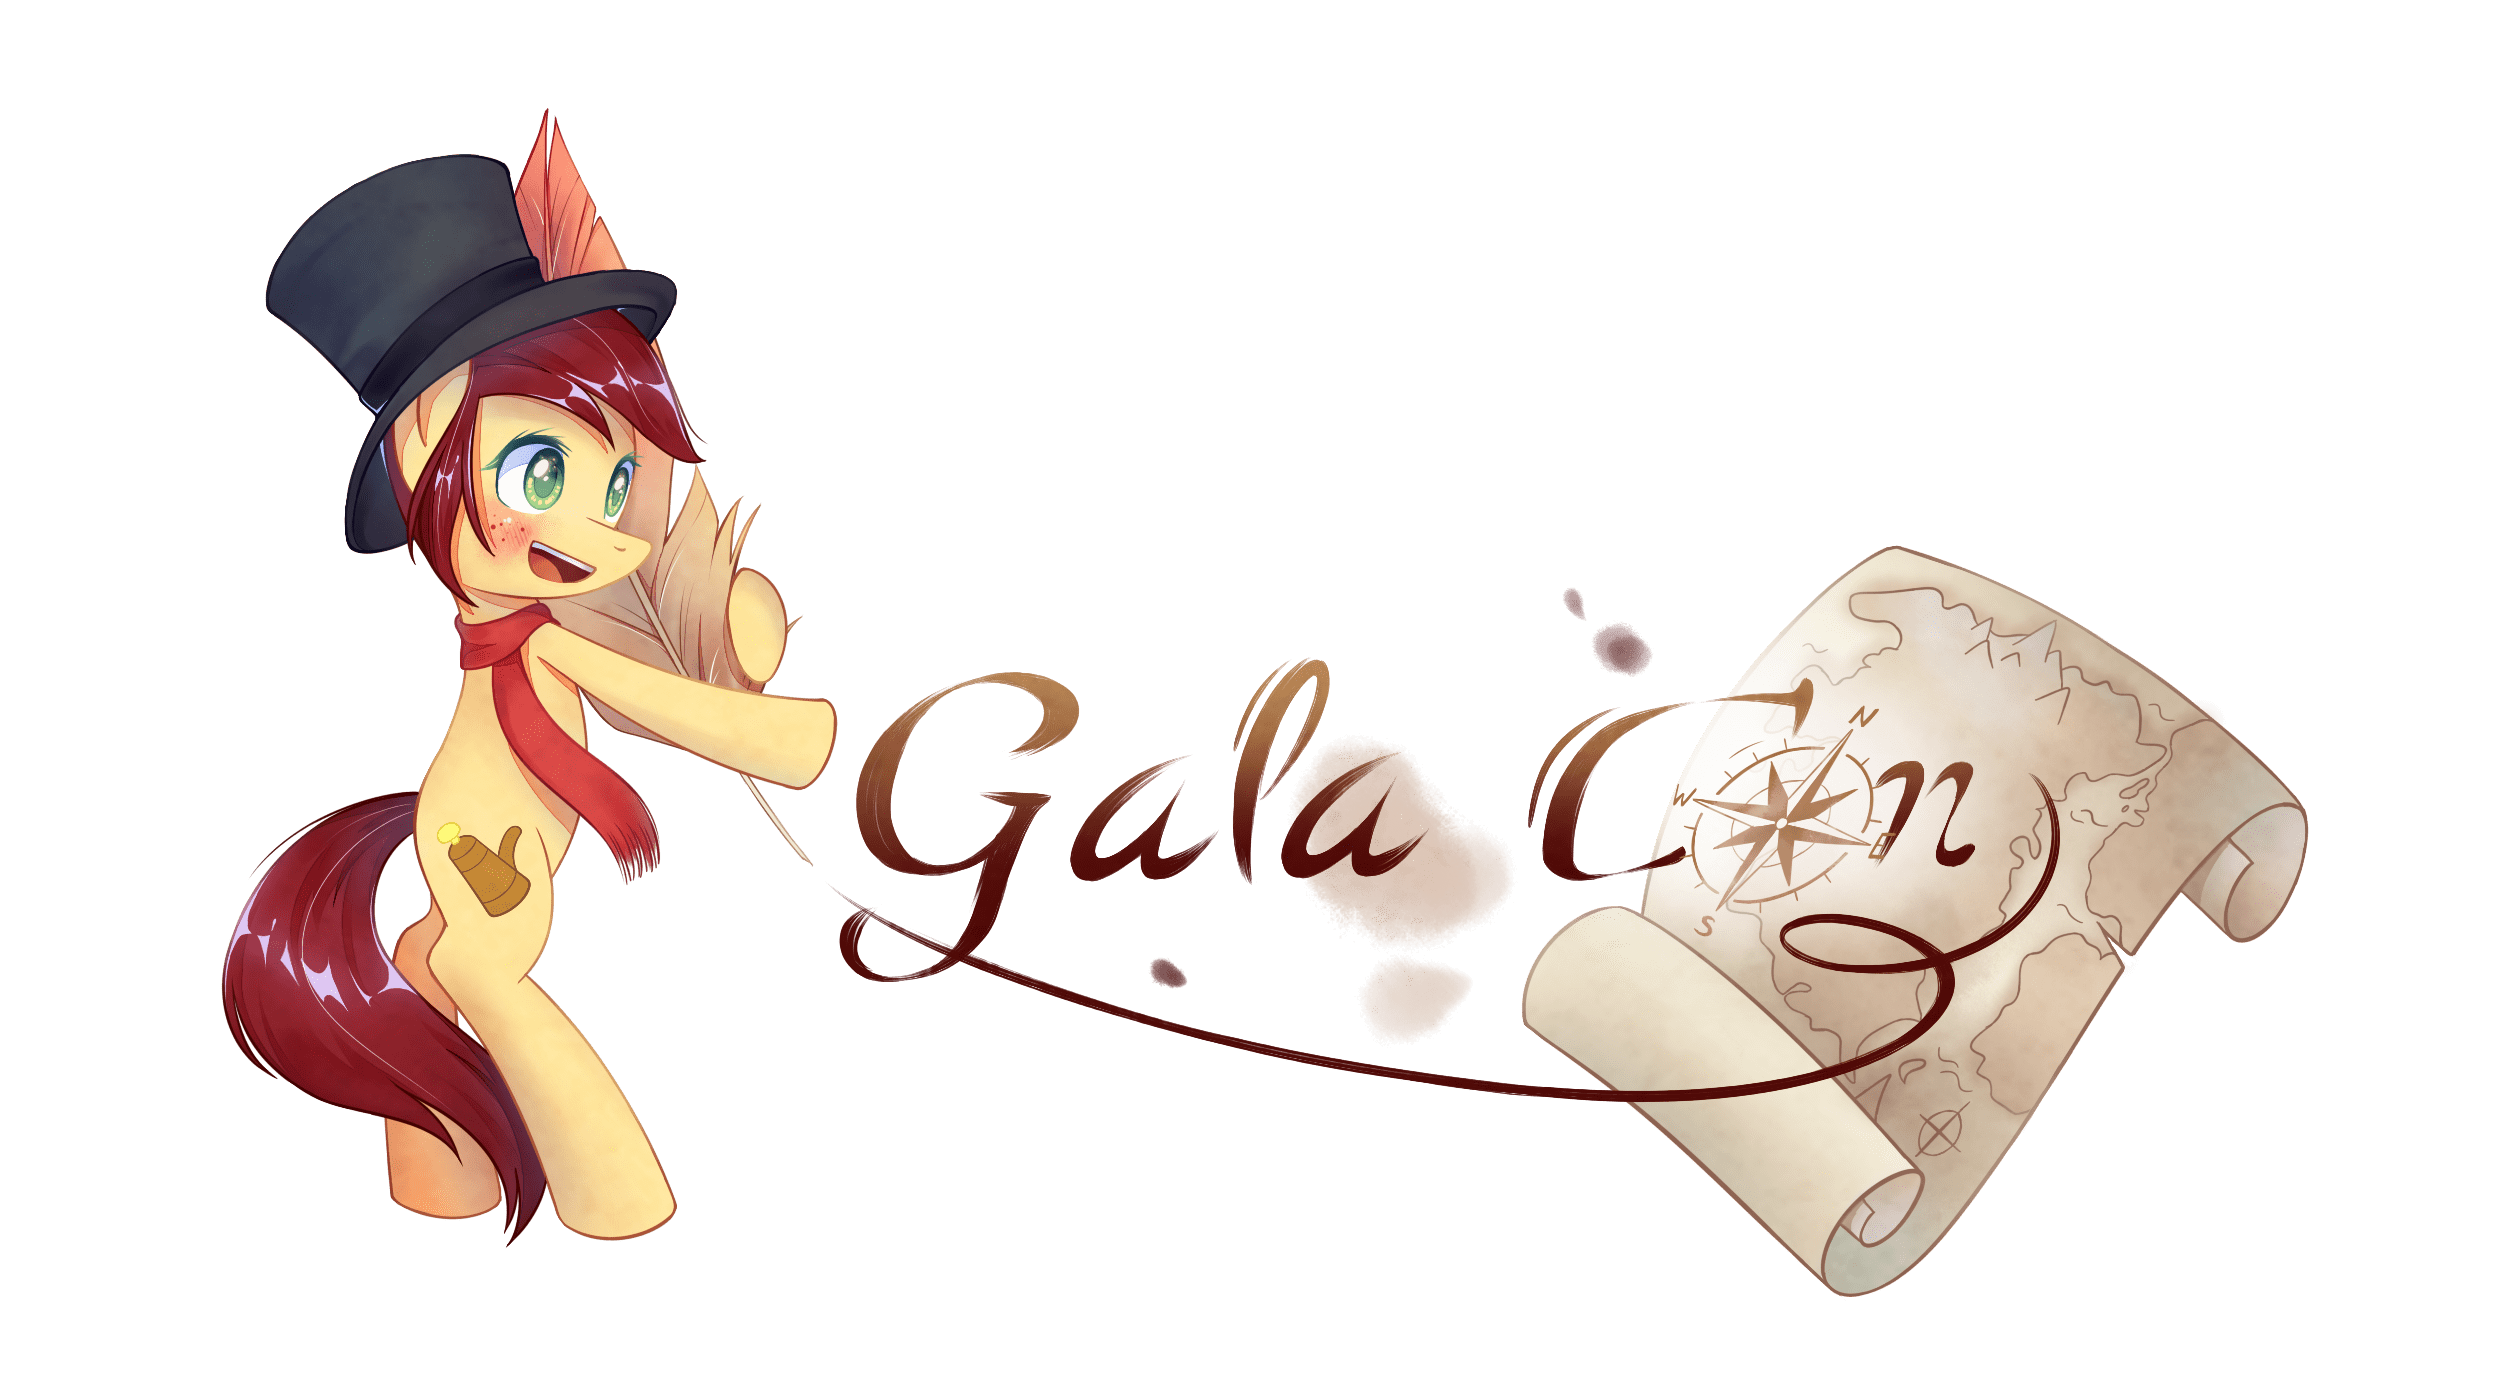 Fundraiser clipart auction chinese. Bronies for good bfg